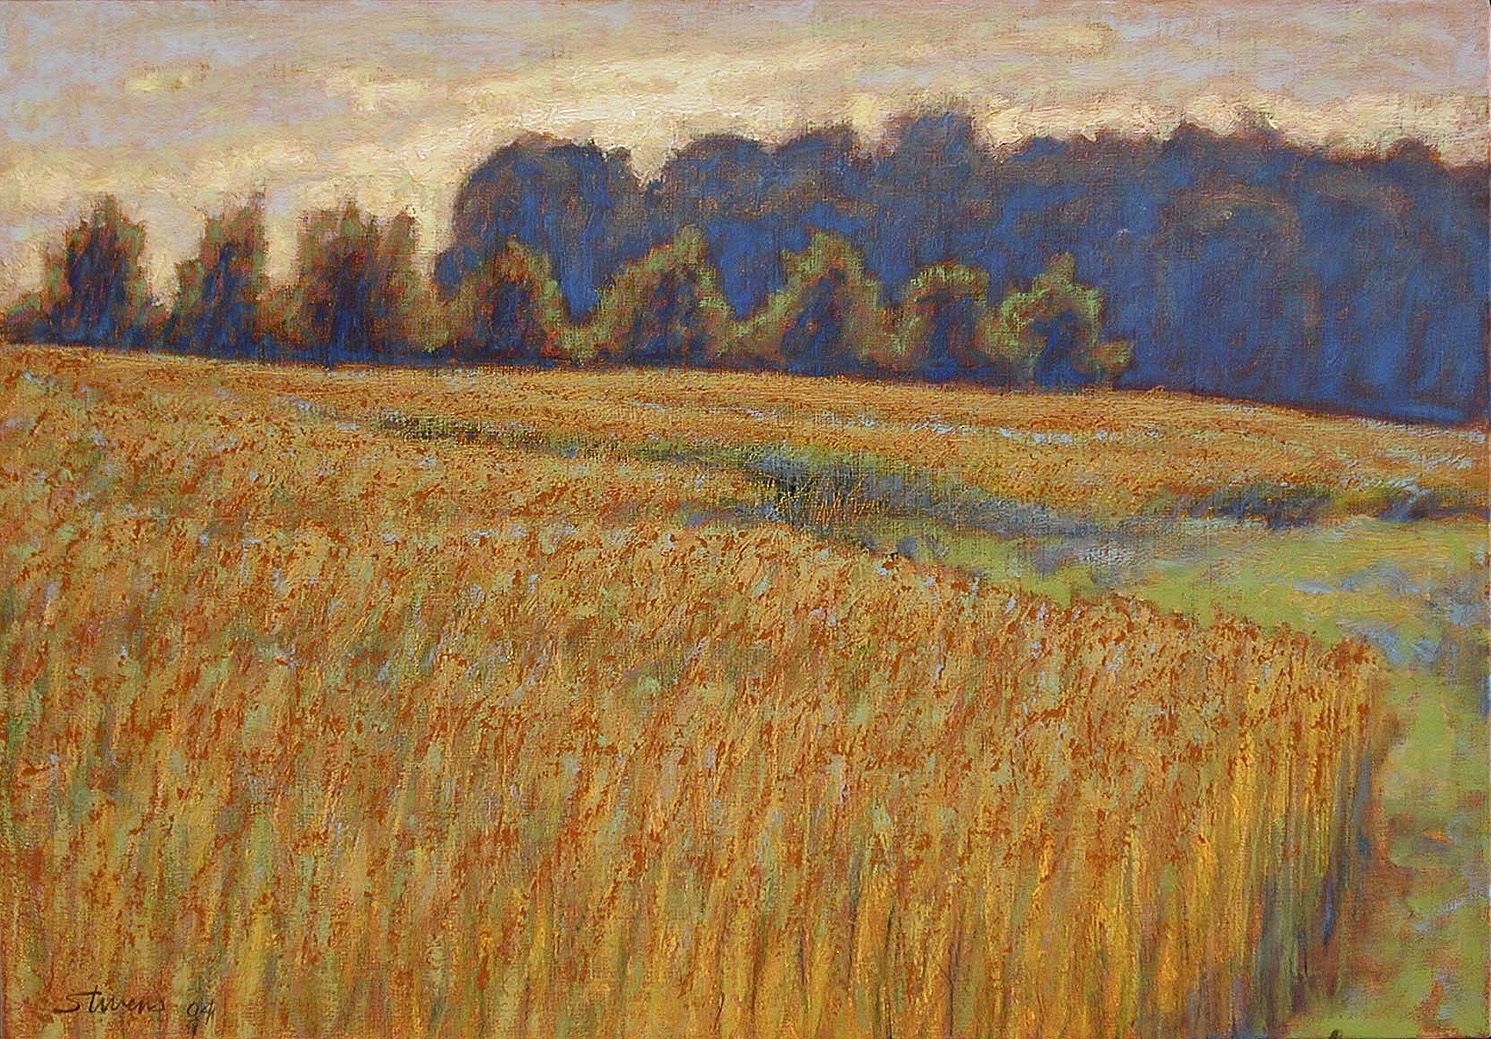 Golden Field   | oil on linen | 14 x 20"